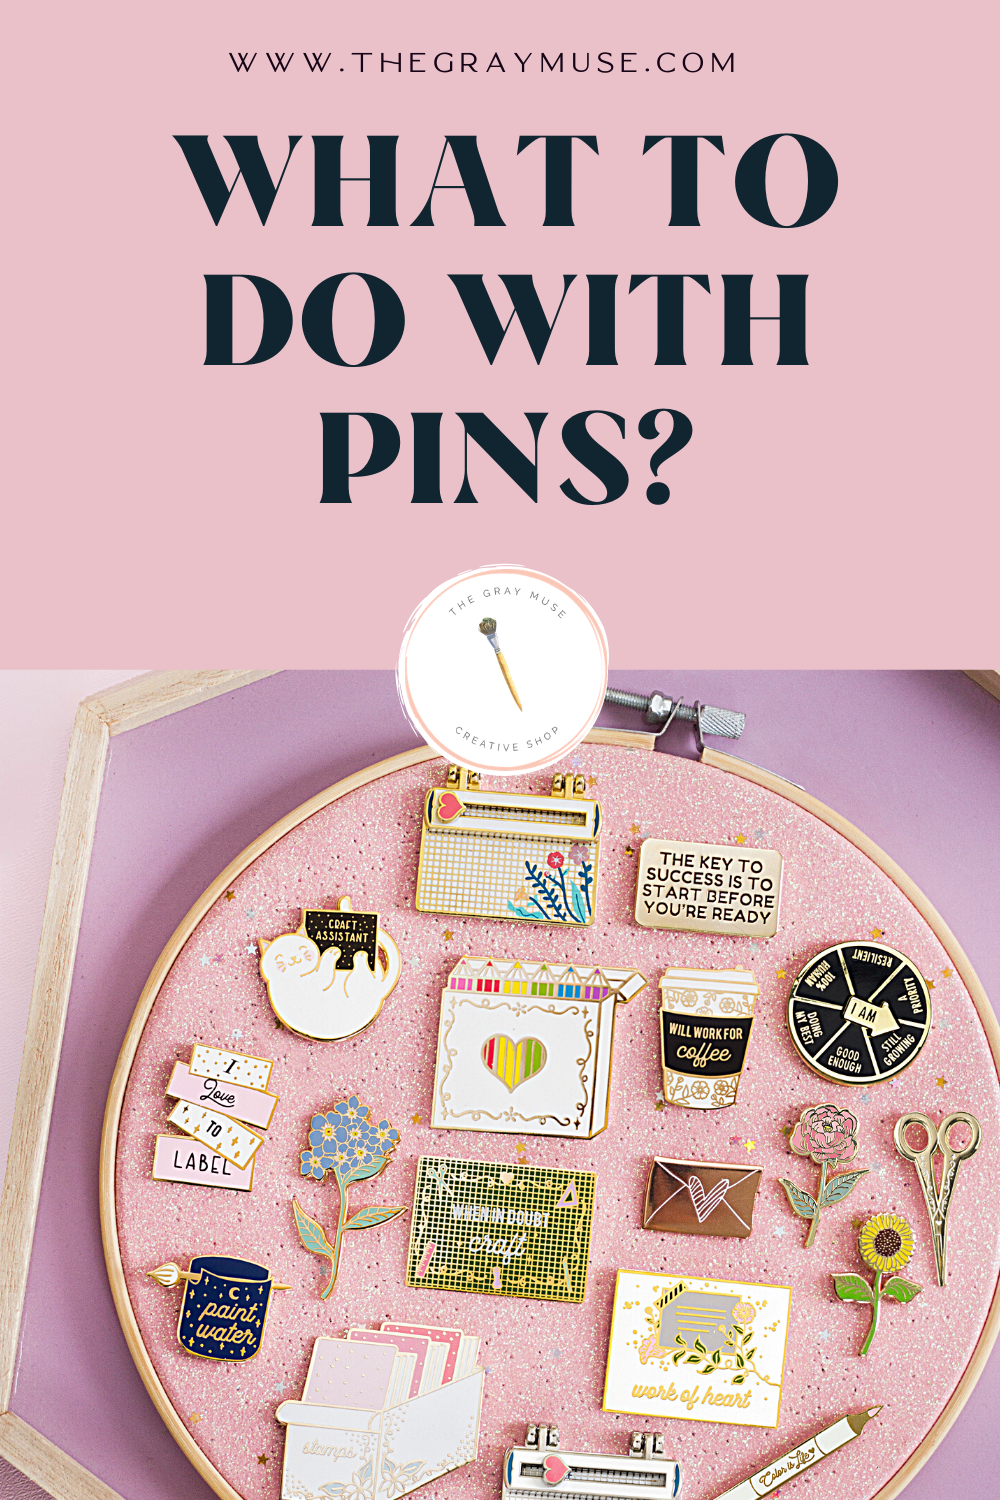 The Gray Muse - What to Do With Pins - Pinterest